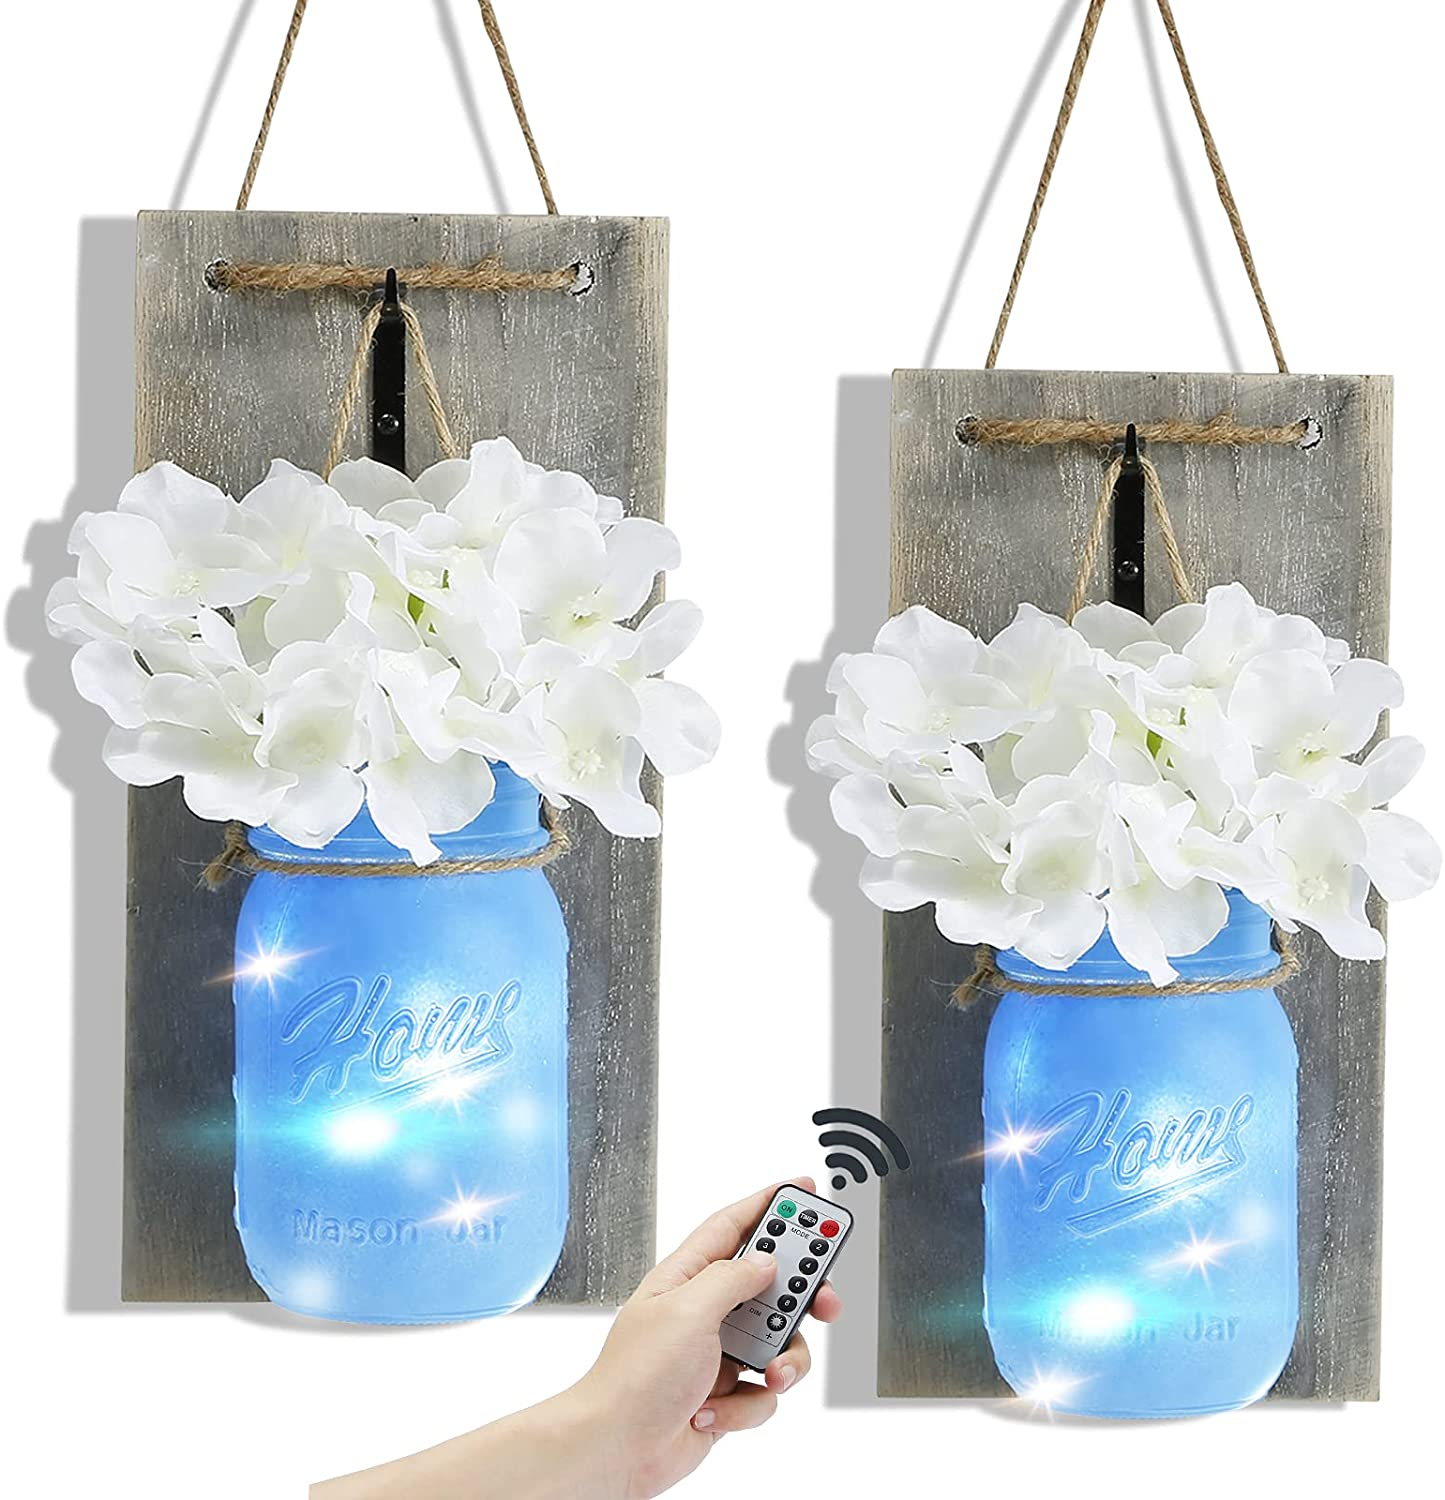 Rustic Wall Sconces Mason Jar Decorative,Home Decoration Wall Decor Handmade Hanging with 6 Hour Timer LED Fairy Lights and Flowers,Farmhouse Sconce Jars for Living Home Kitchen Decor Set of 2 (Blue)